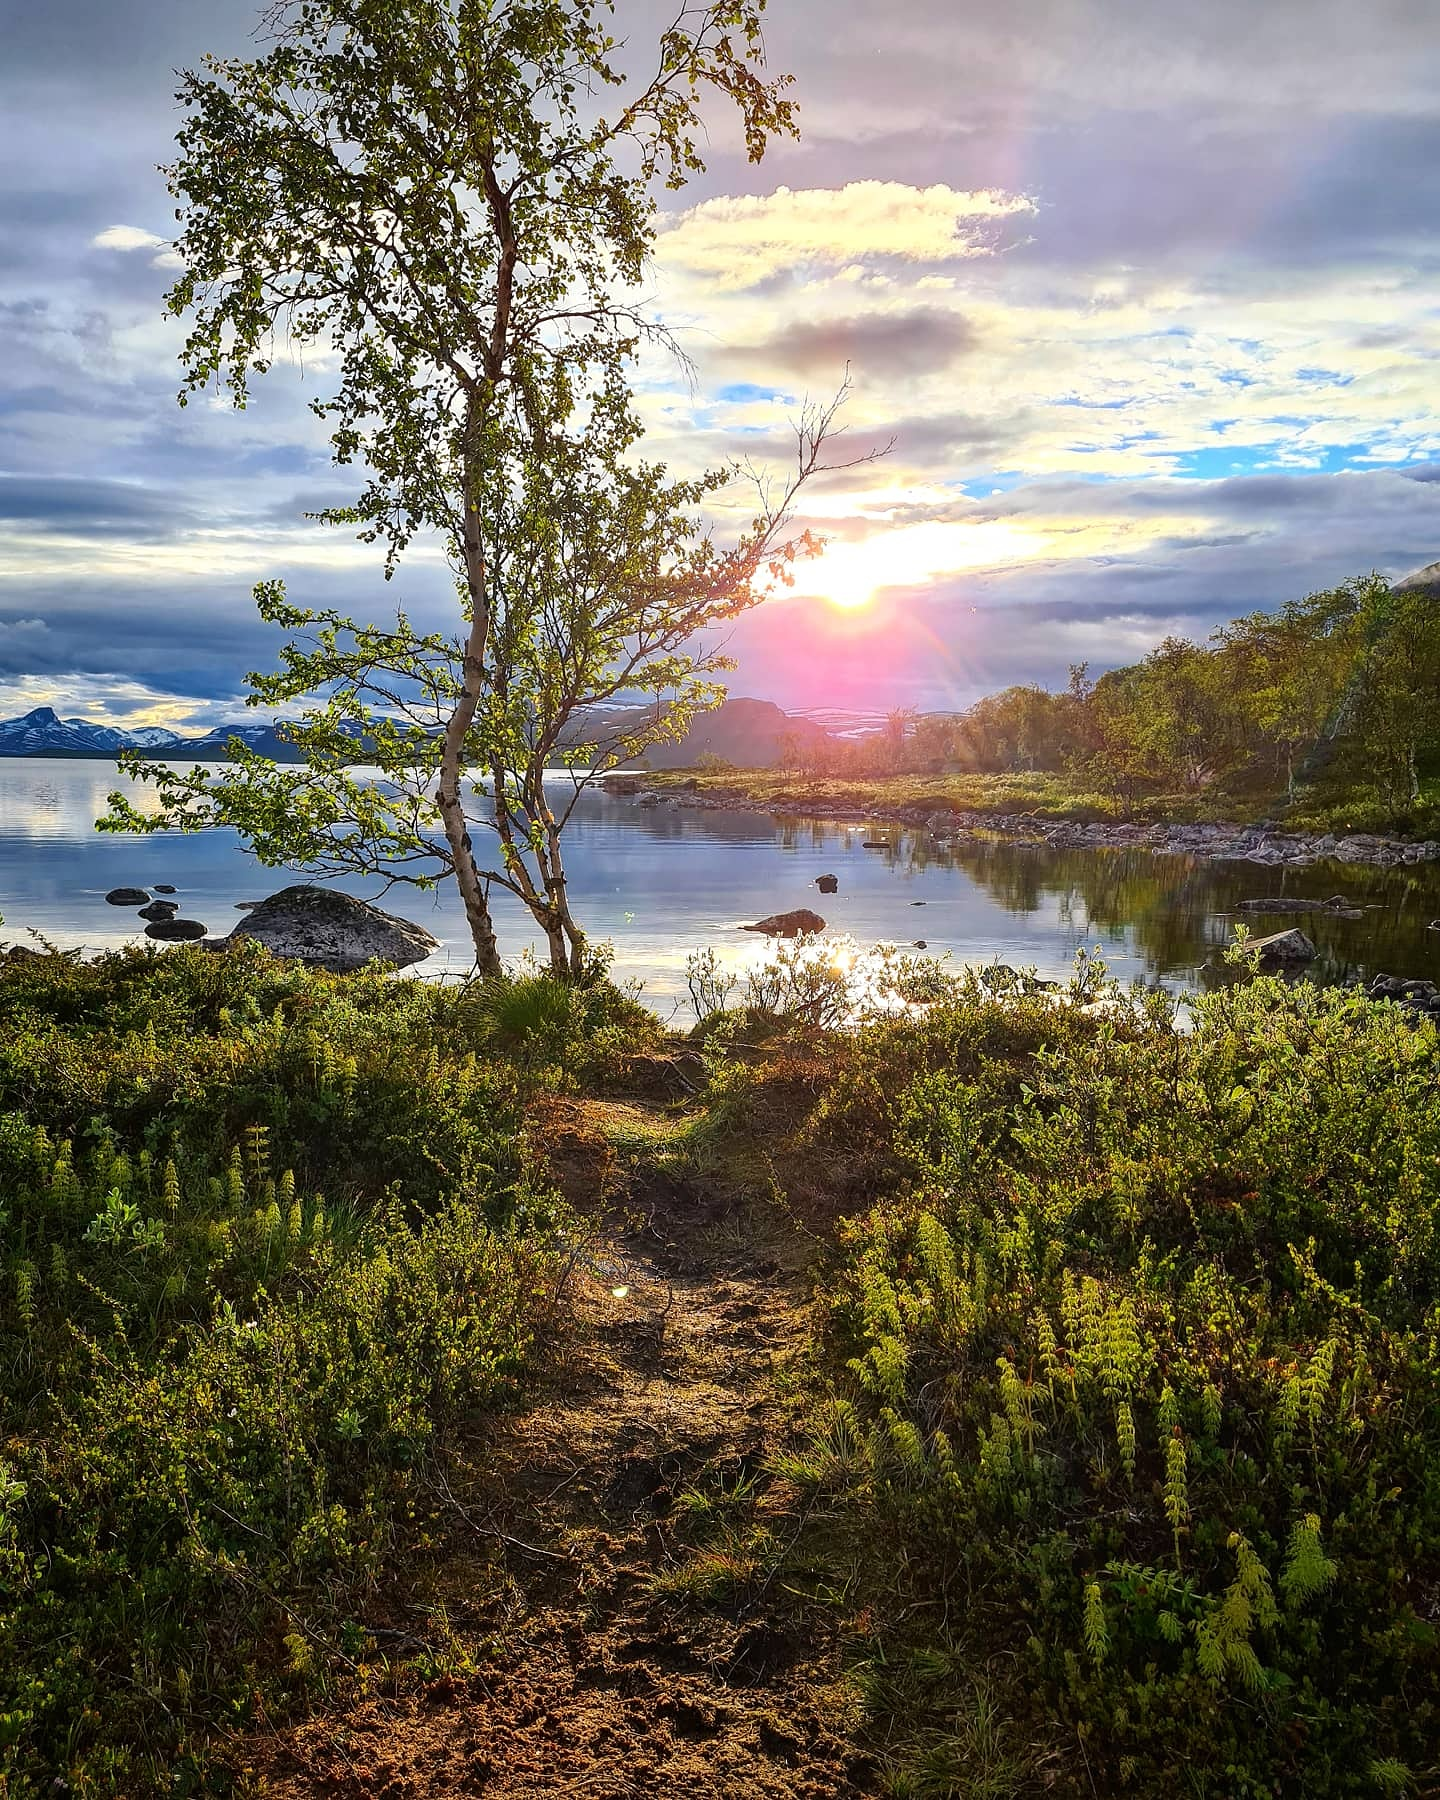 summer and Nightless night in Kilpisjärvi Finnish Lapland by Maiju